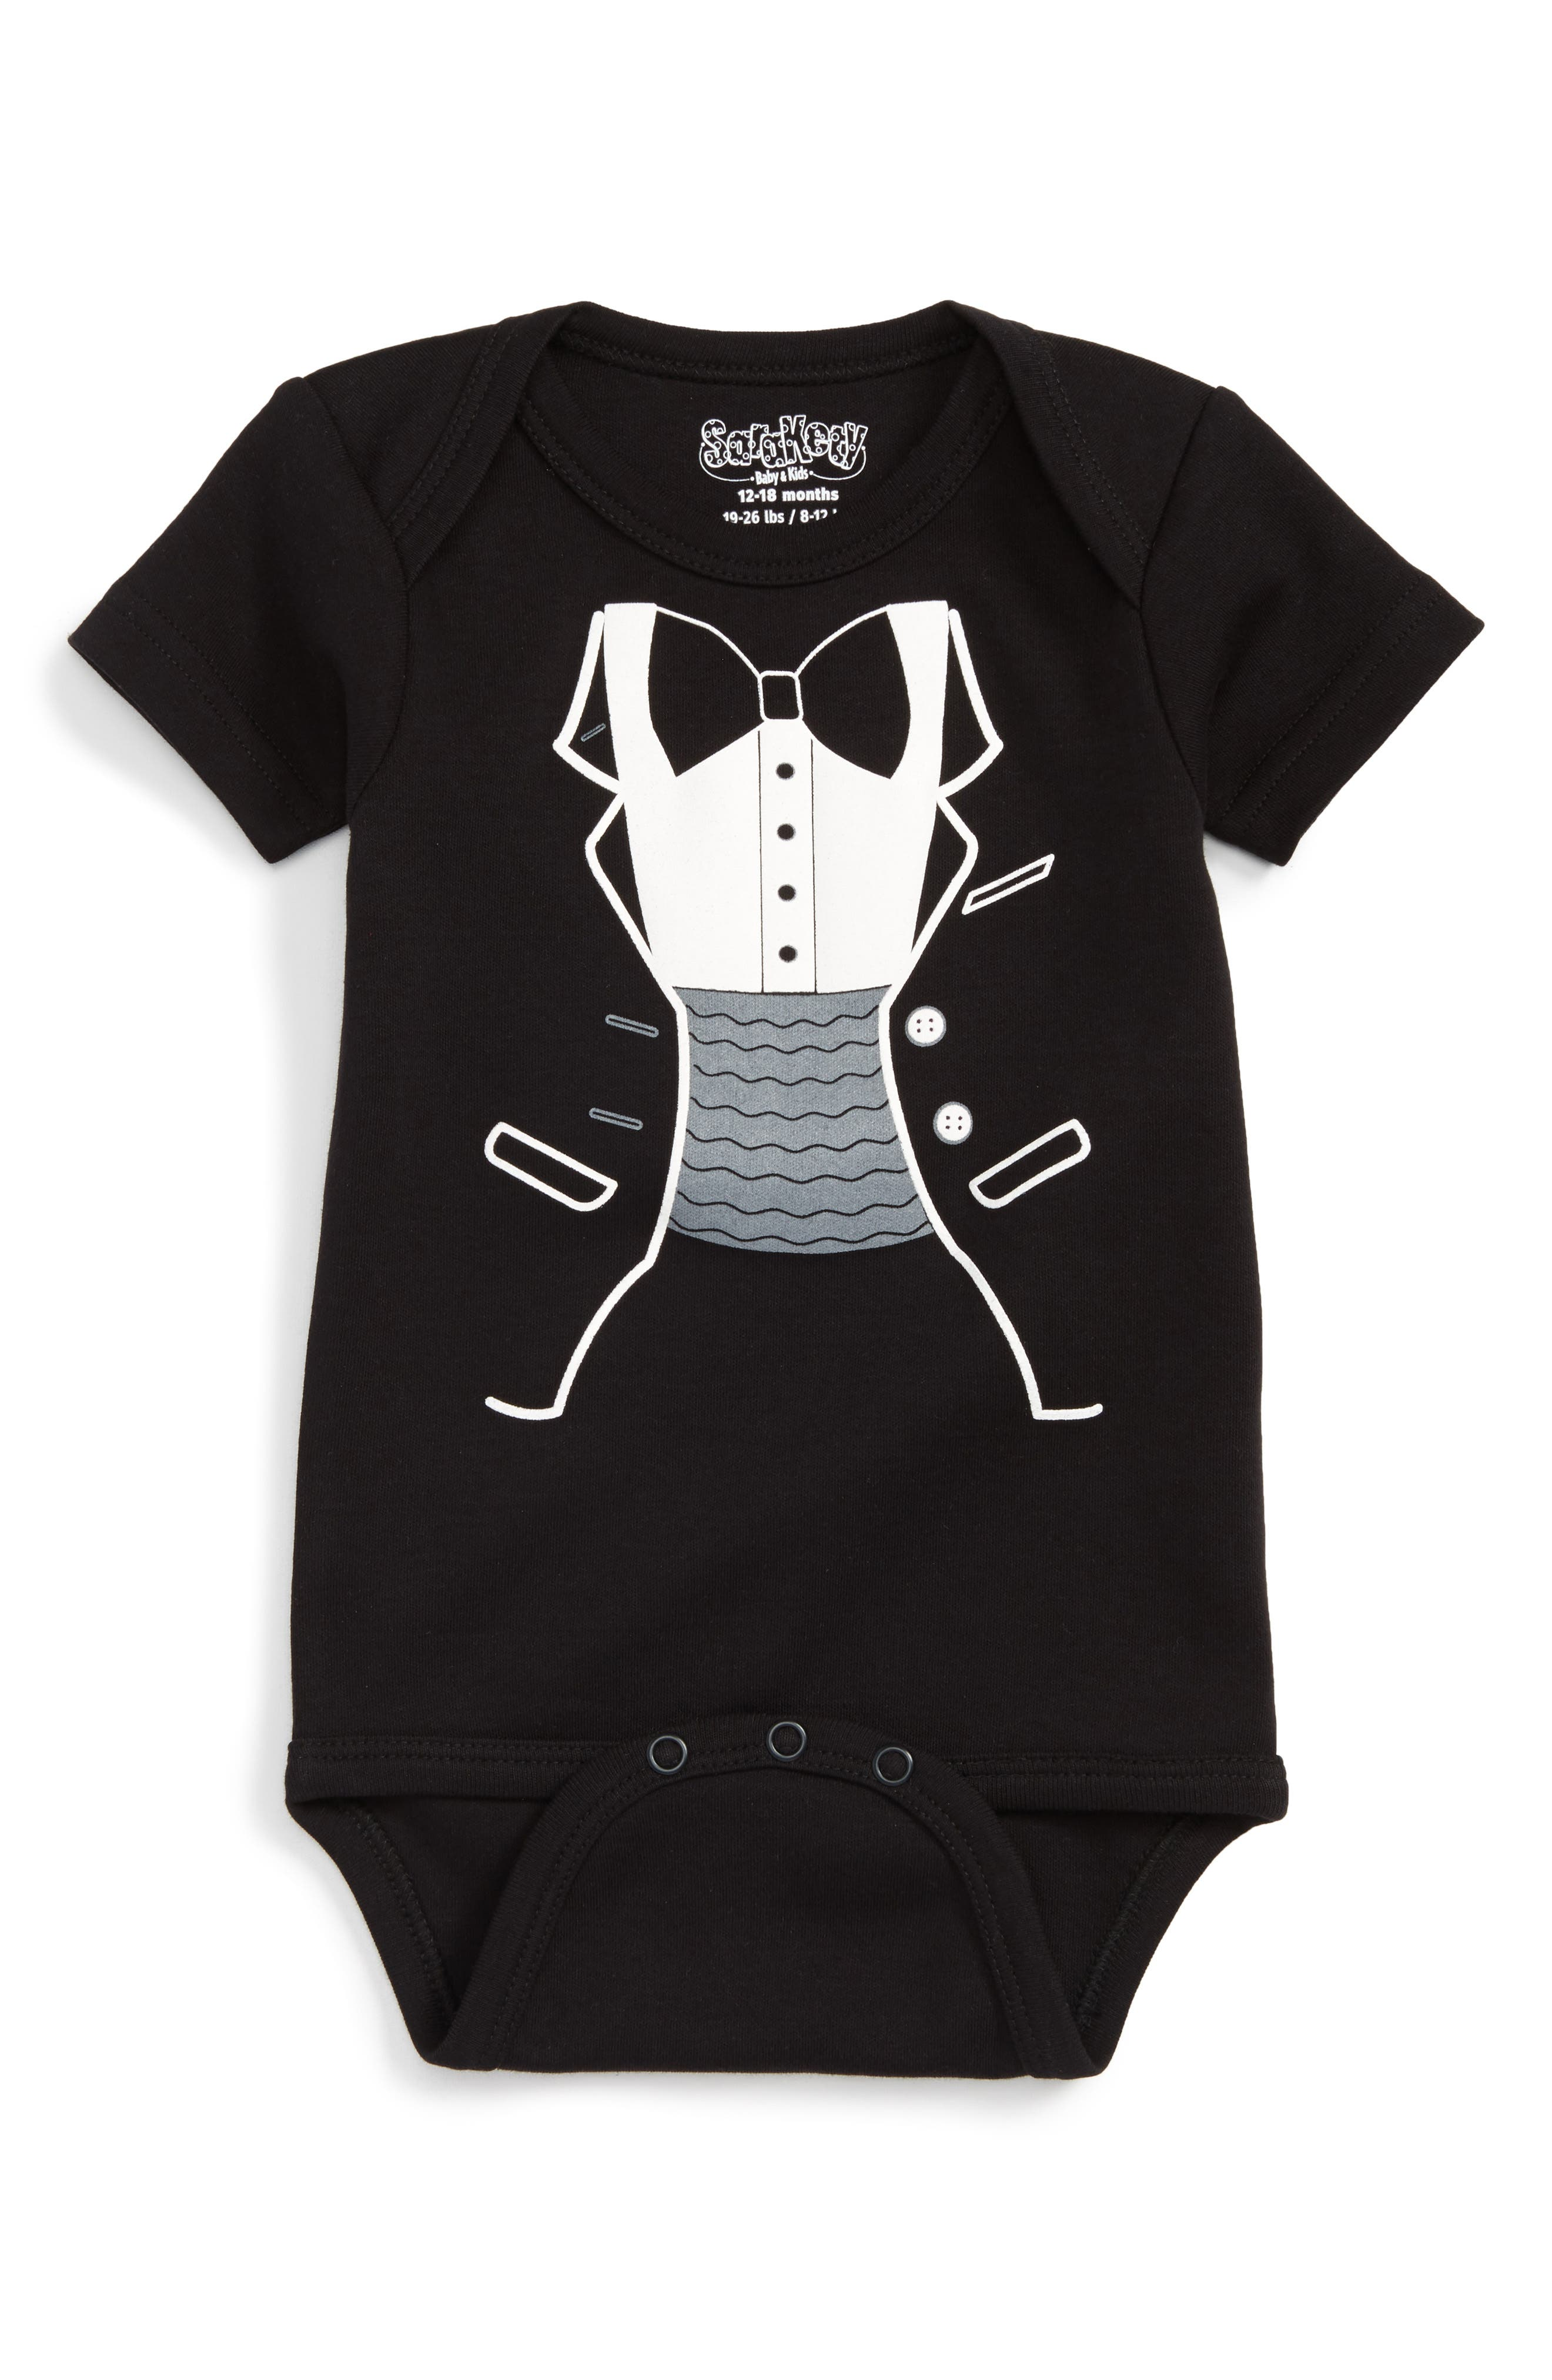 Alternate Image 1 Selected - Sara Kety Baby & Kids Tuxedo Print Bodysuit (Baby Boys)